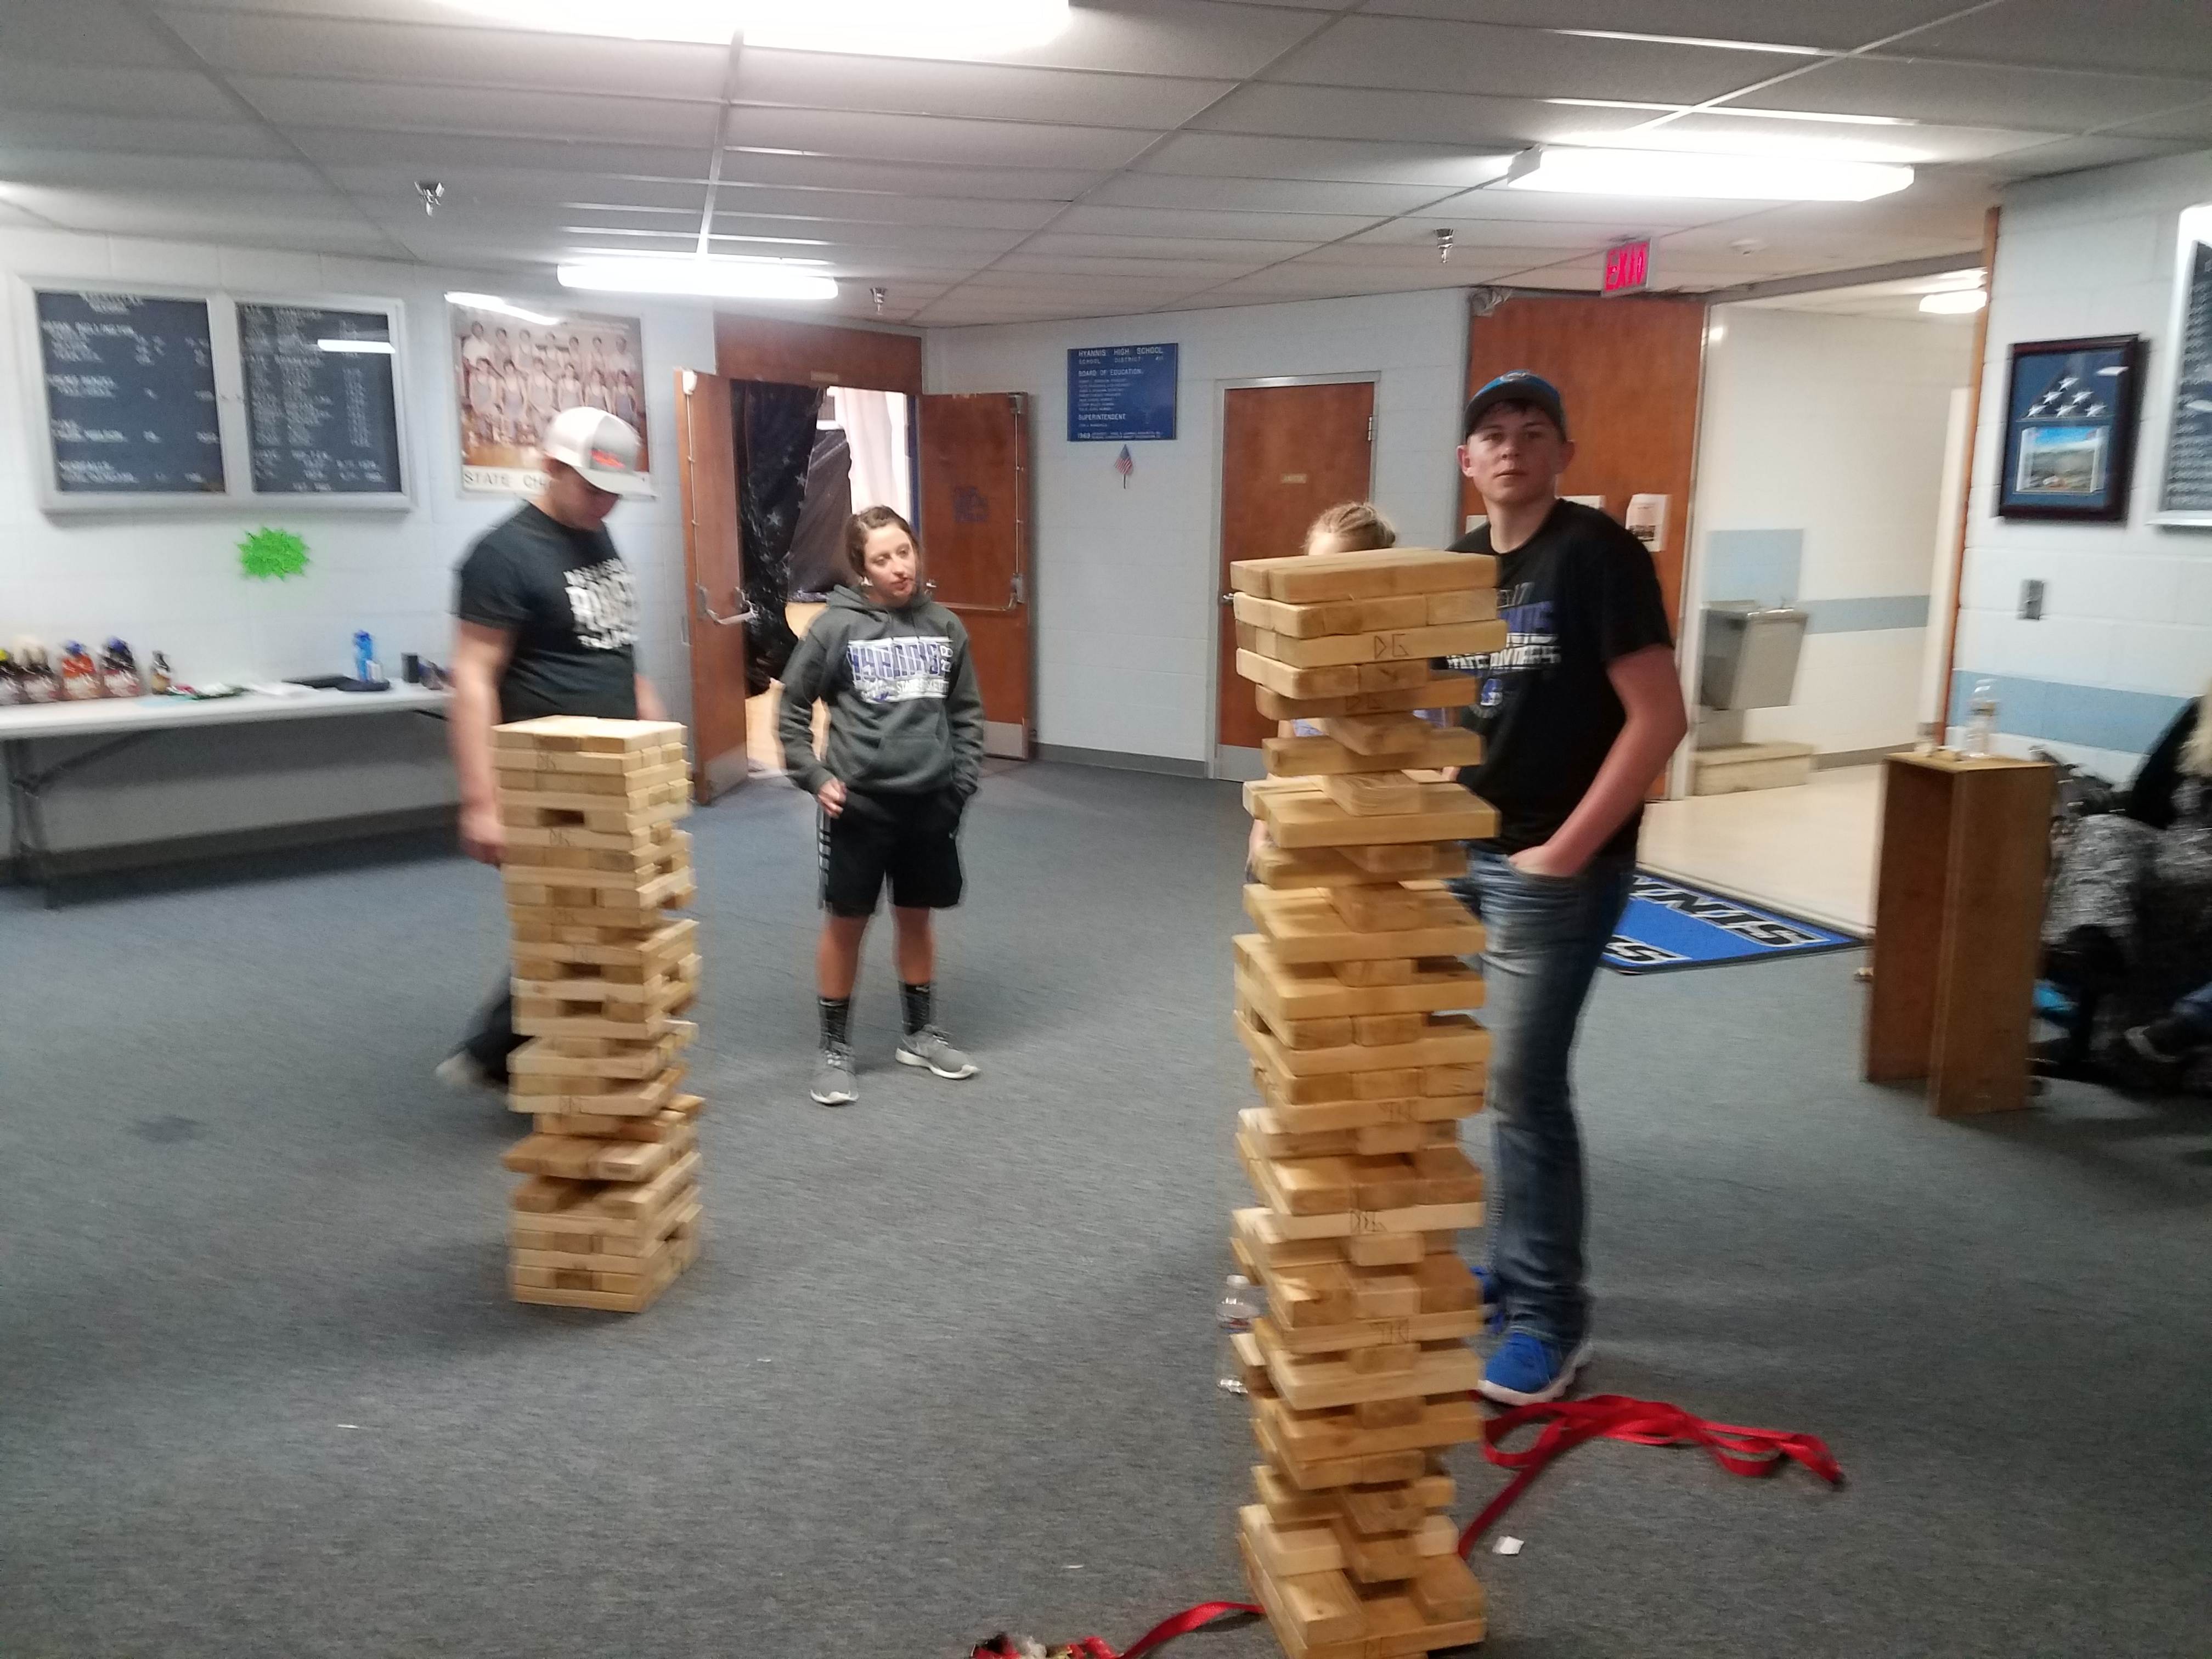 Dozers Games Topple Tower